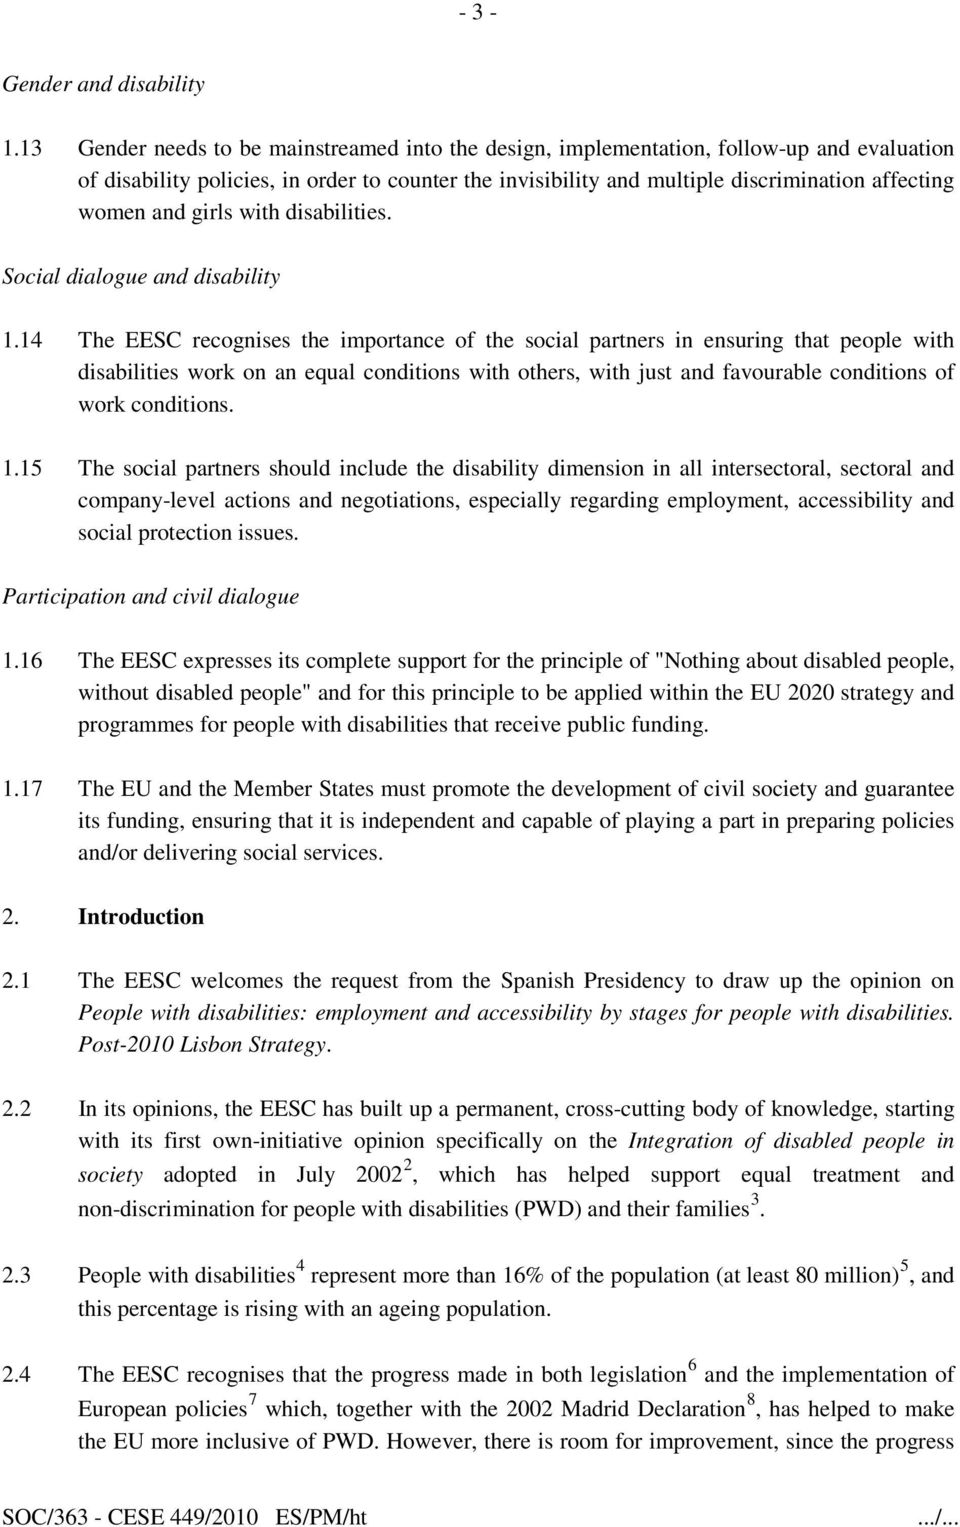 and girls with disabilities. Social dialogue and disability 1.